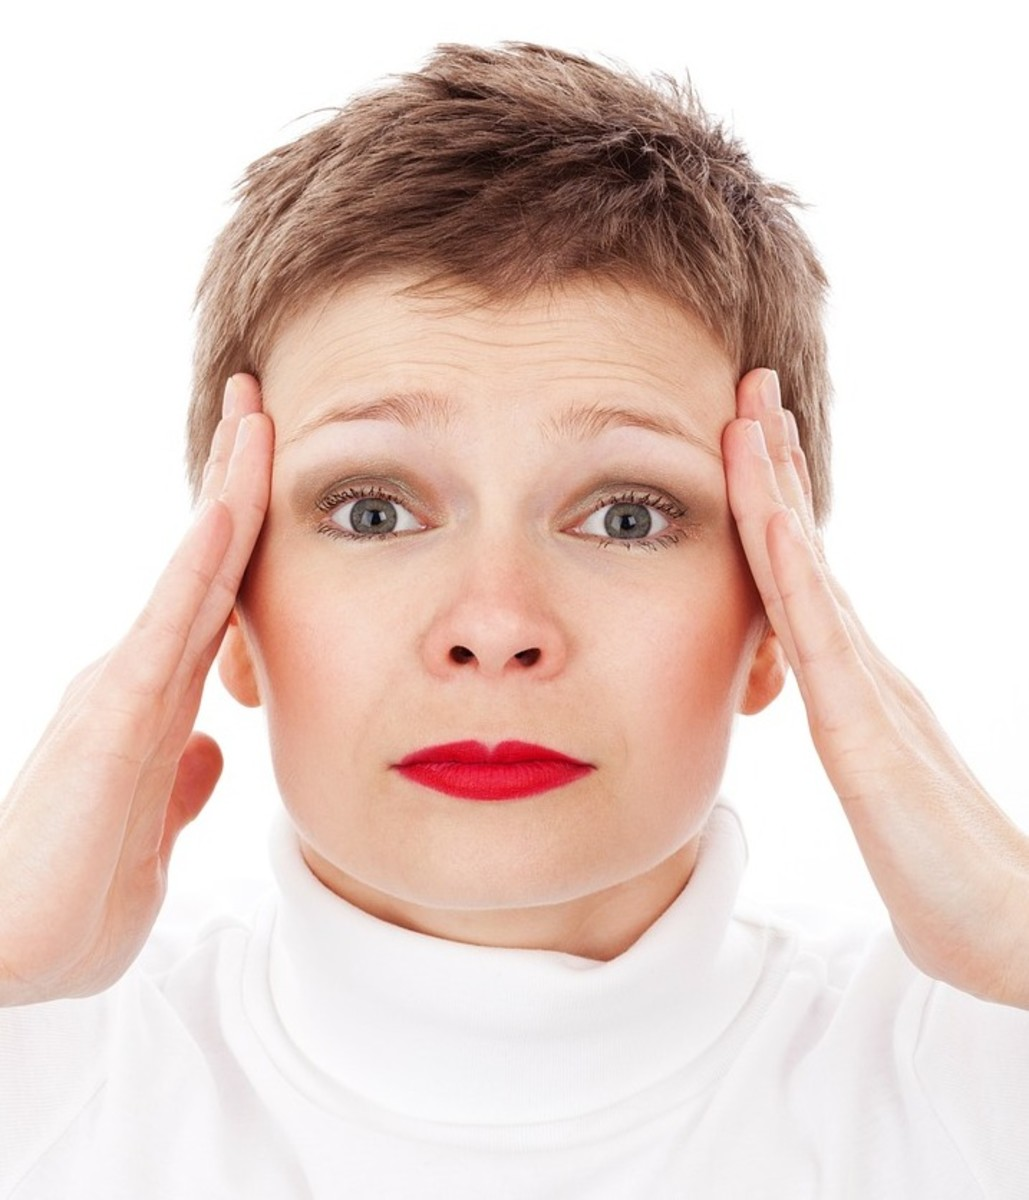 Migraines cause a variety of unpleasant symptoms that can be remedies with prophylactics.